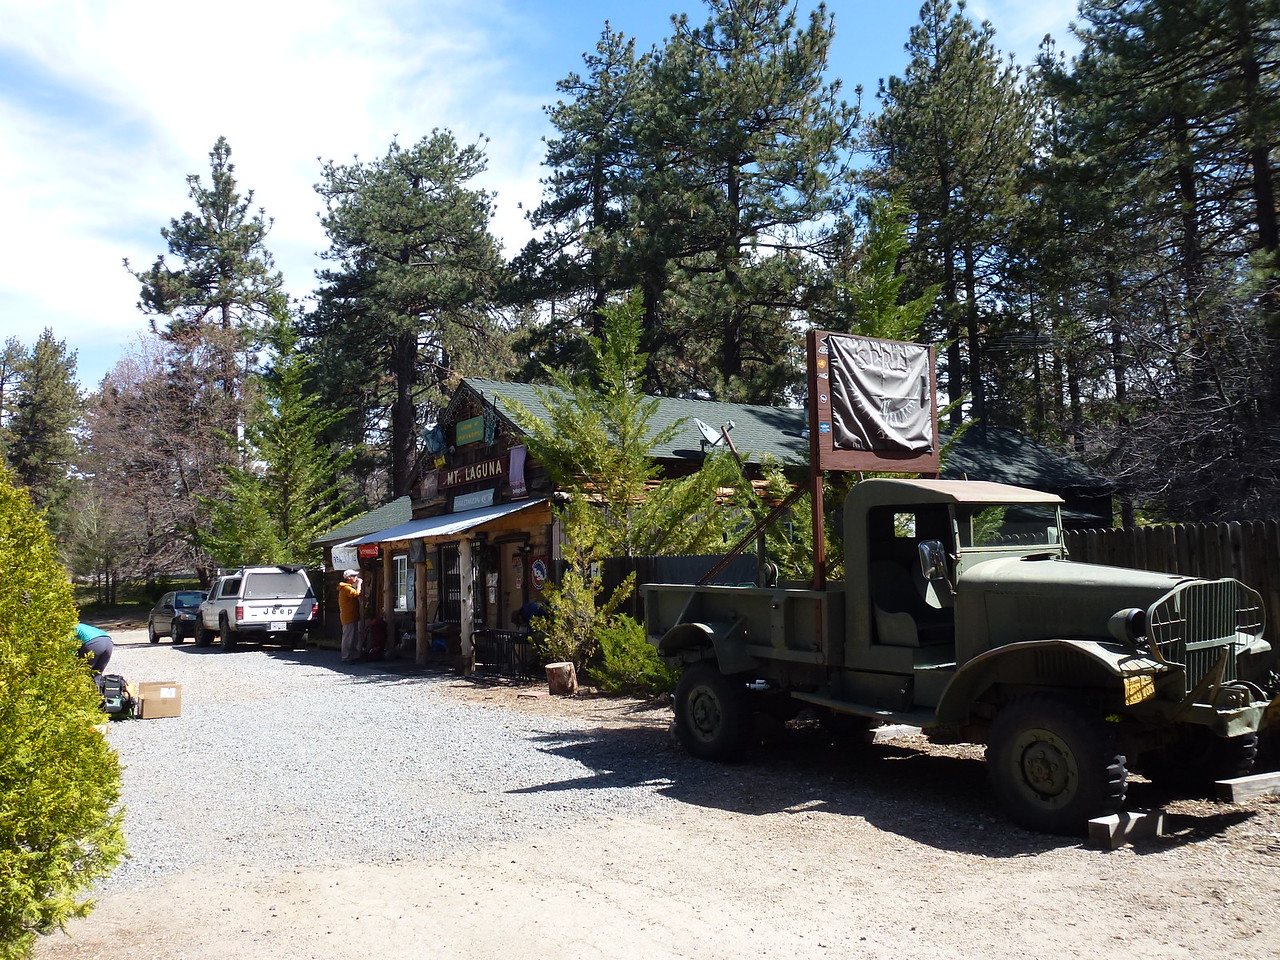 Mt. Laguna , California <br /> <br /> This little sporting goods store is a major restocking place for folks hiking the Pacific Crest Trail .<br /> <br /> The PCT passes about 6 miles from here